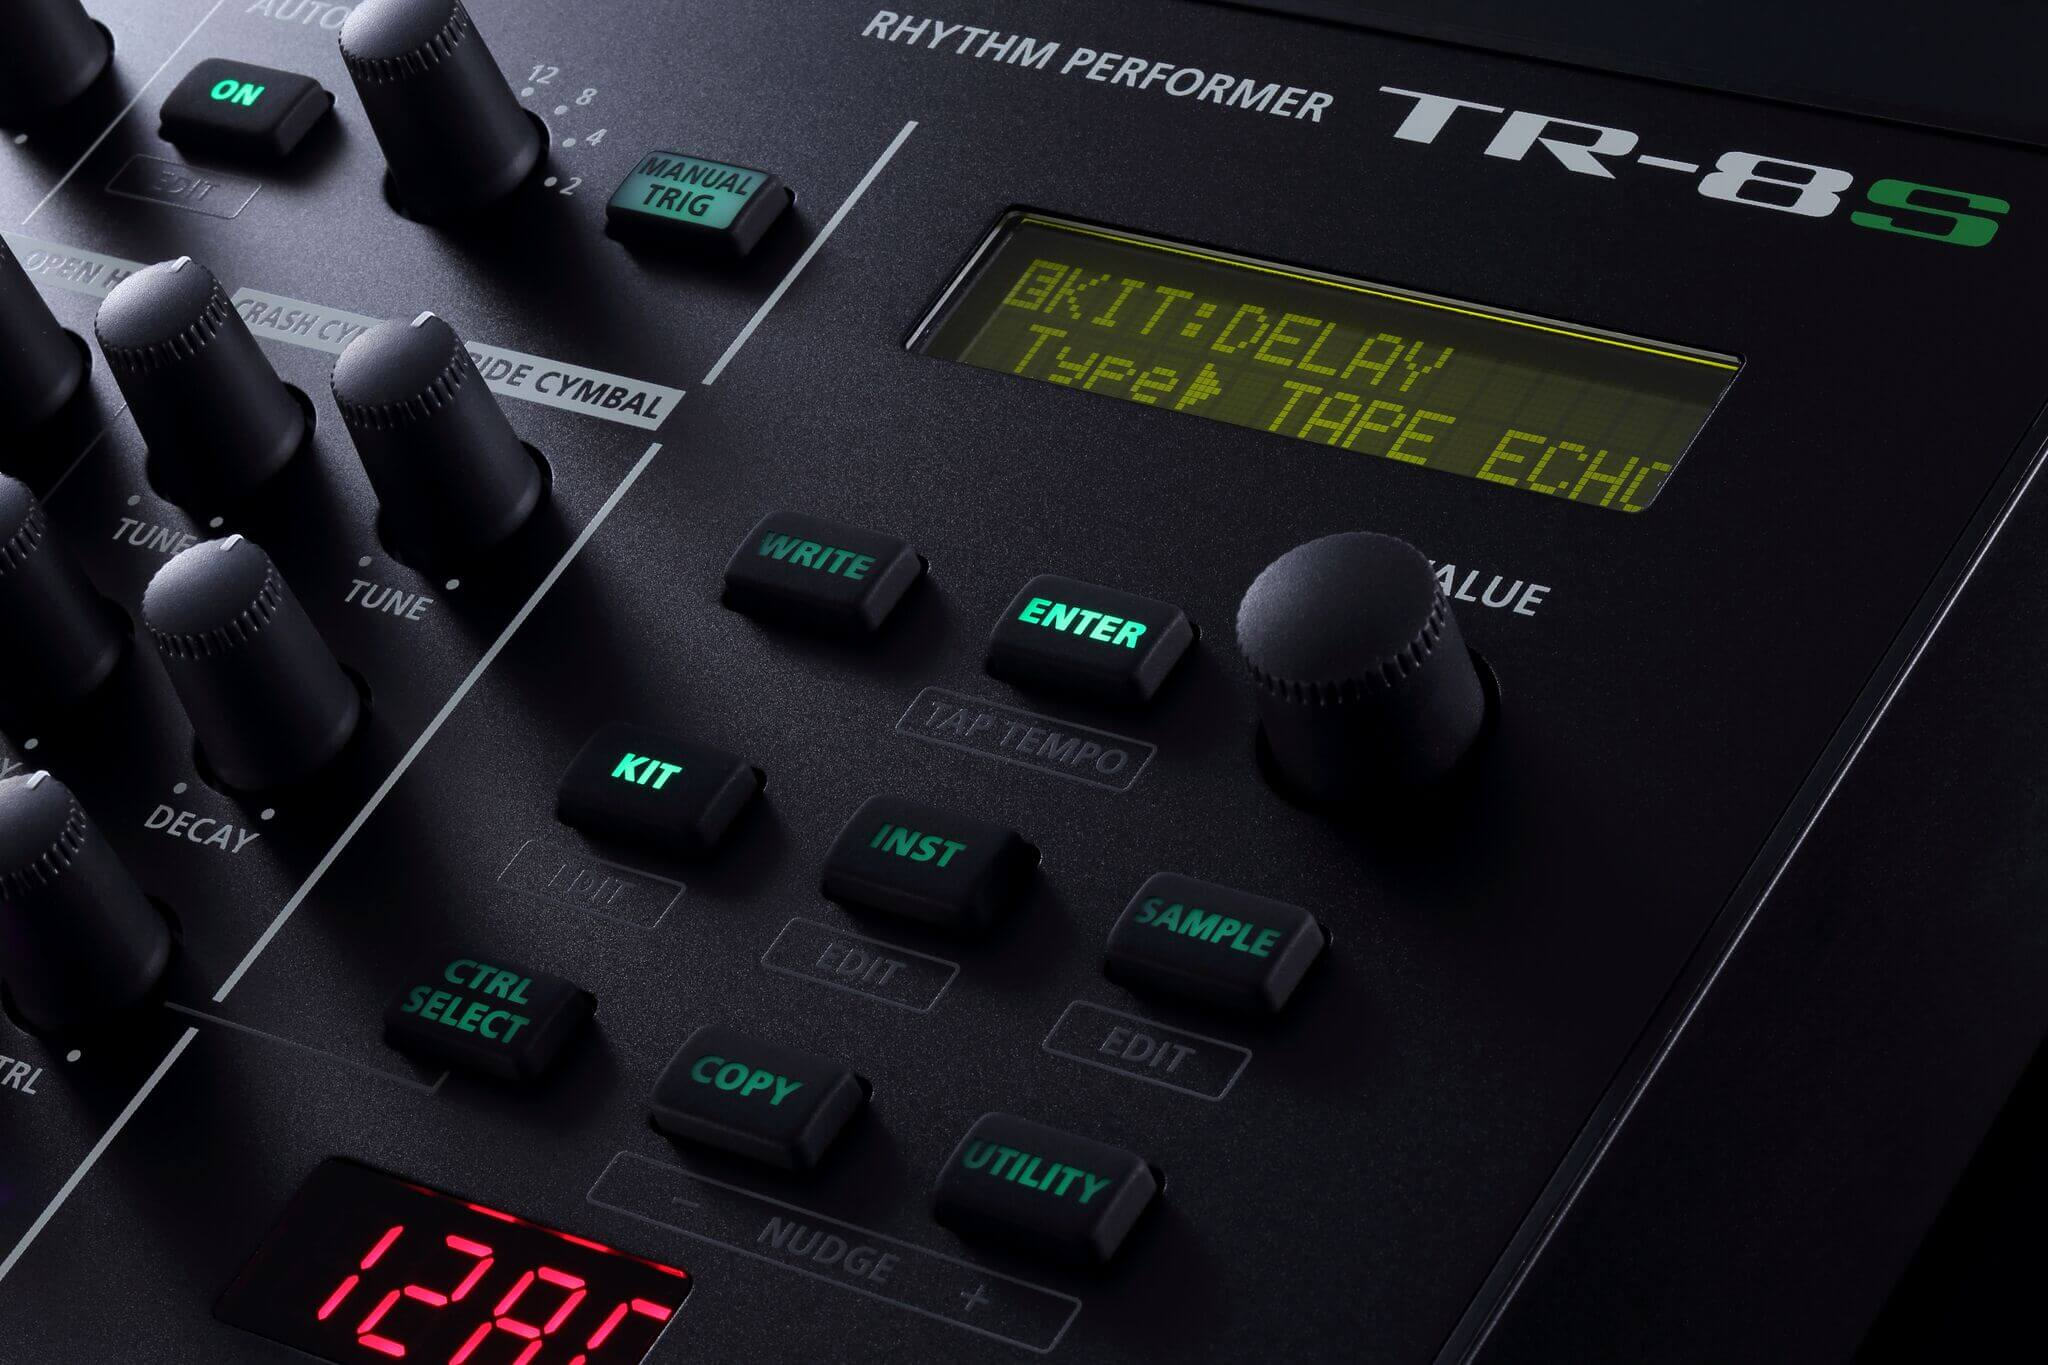 Roland Unveils the TR-8S Rhythm Performer - ADSR